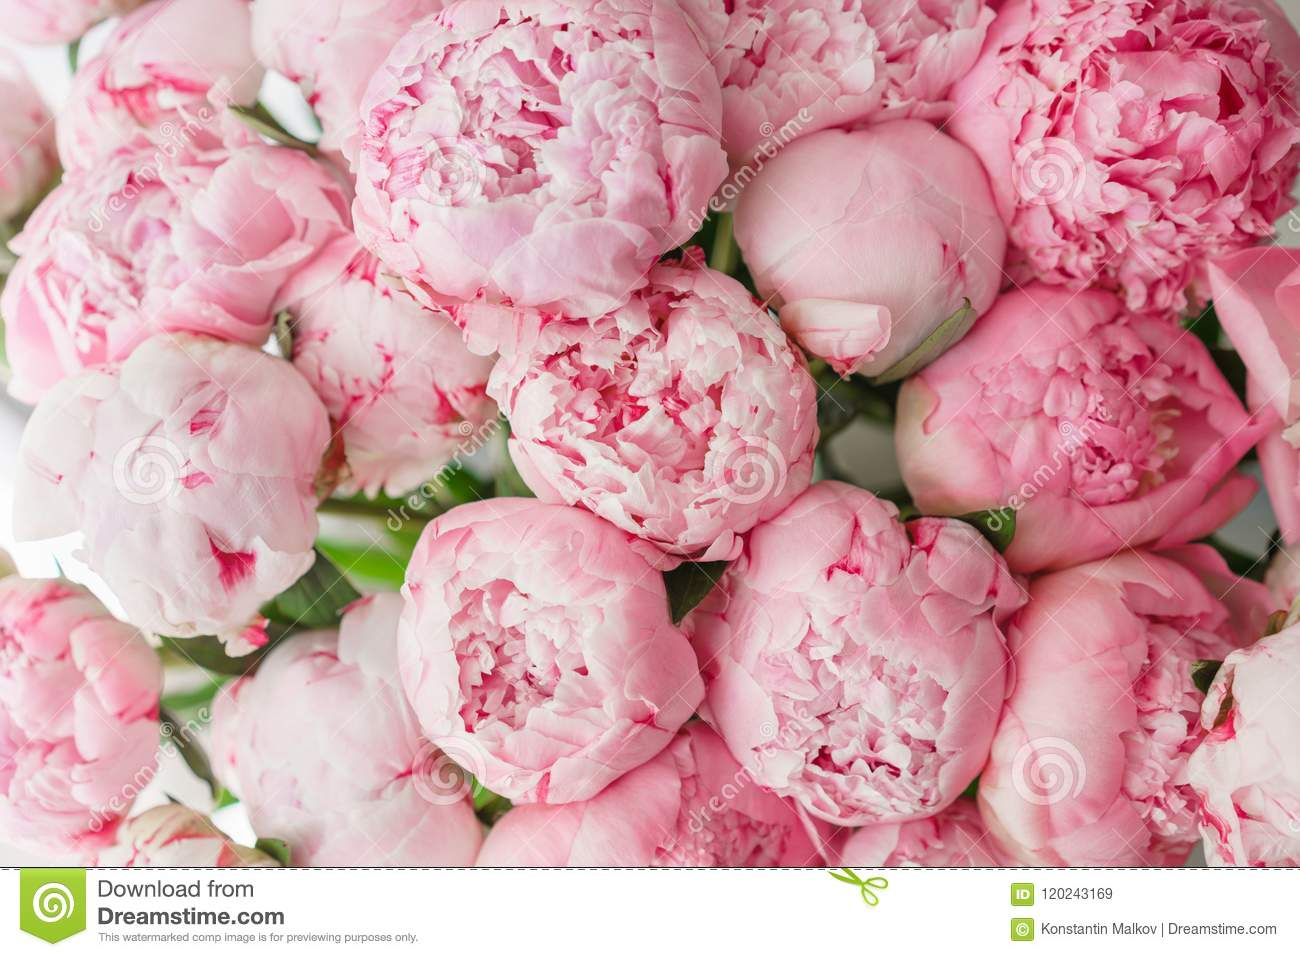 Wallpaper lovely flowers pink peonies floral compositions wallpaper lovely flowers pink peonies floral compositions daylight mightylinksfo